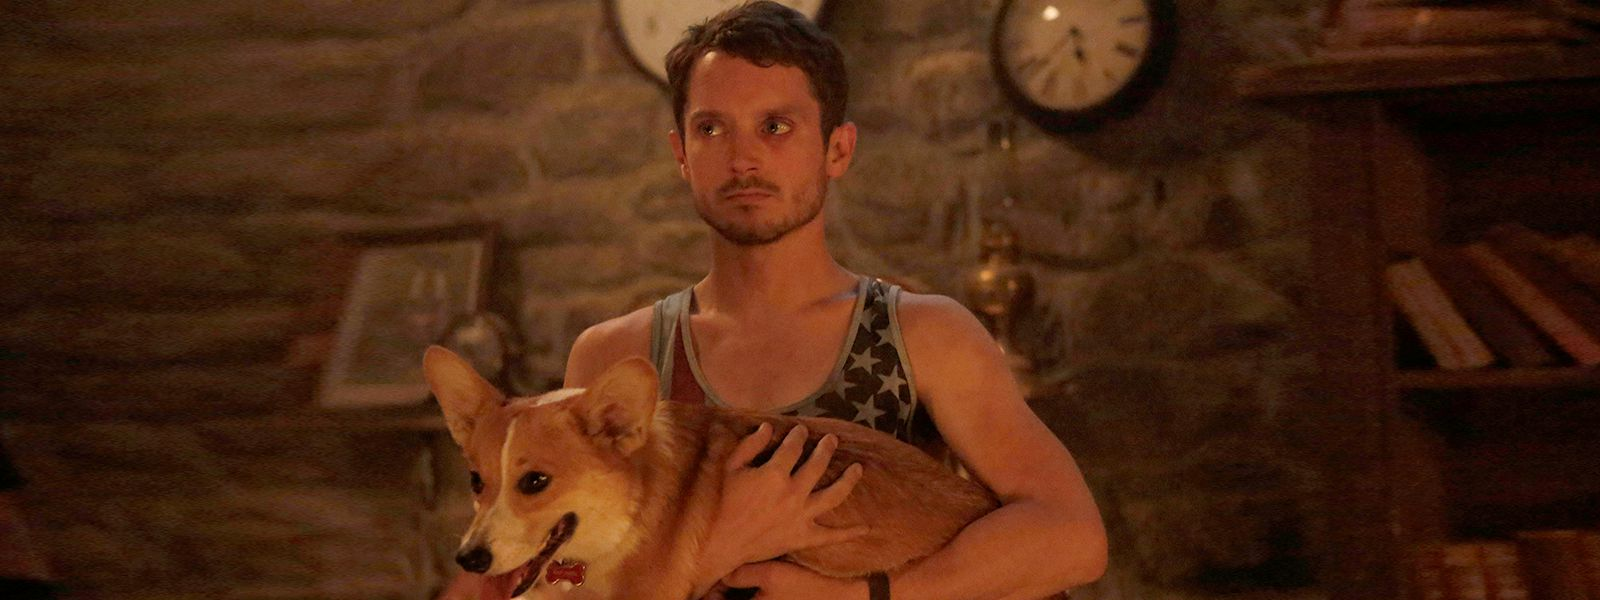 bbc-america-dirk-gently-todd-wood-108-800×600